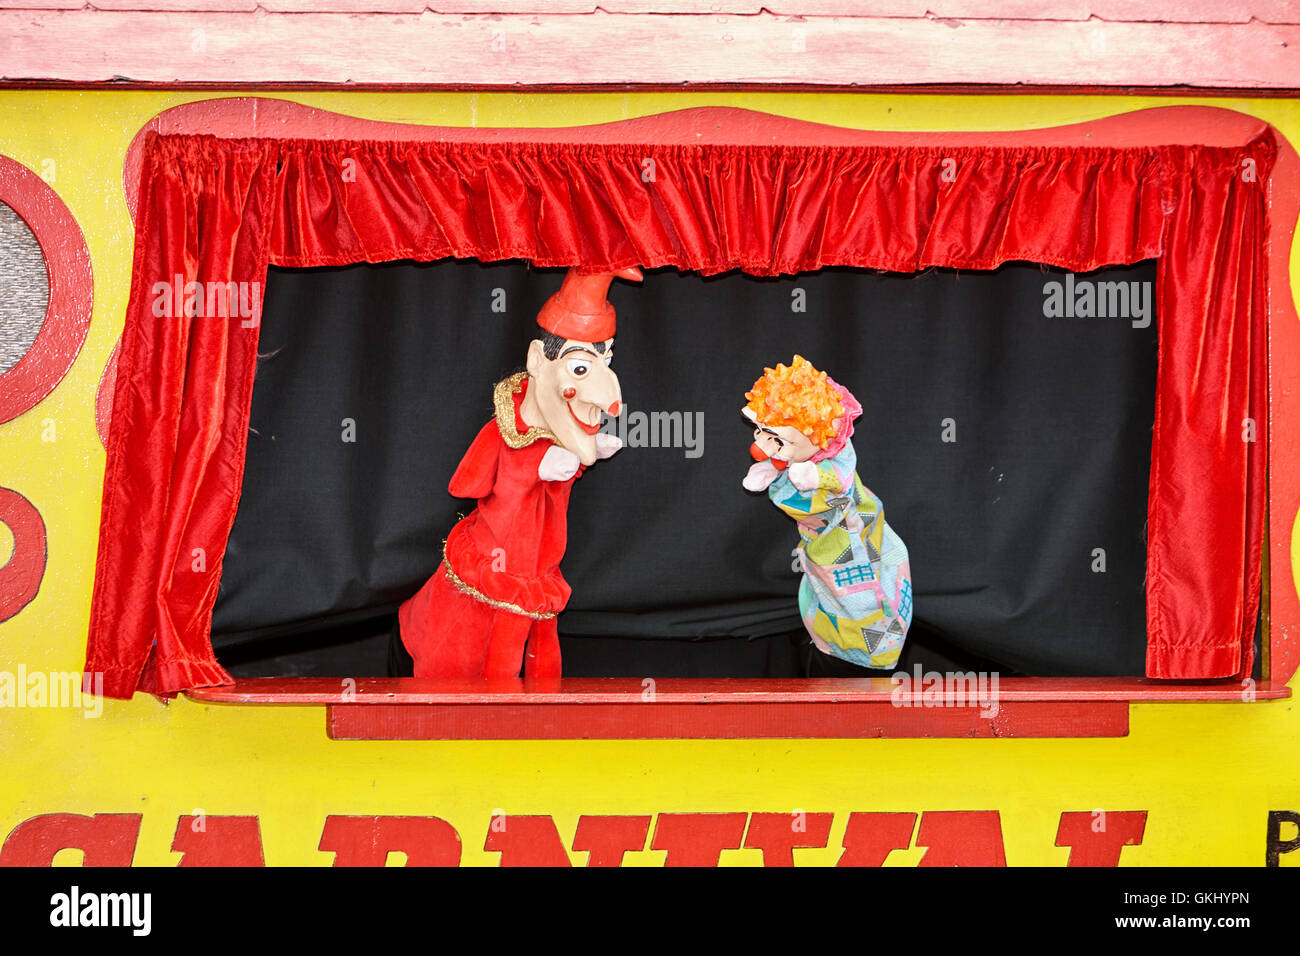 punch and judy show in the uk - Stock Image